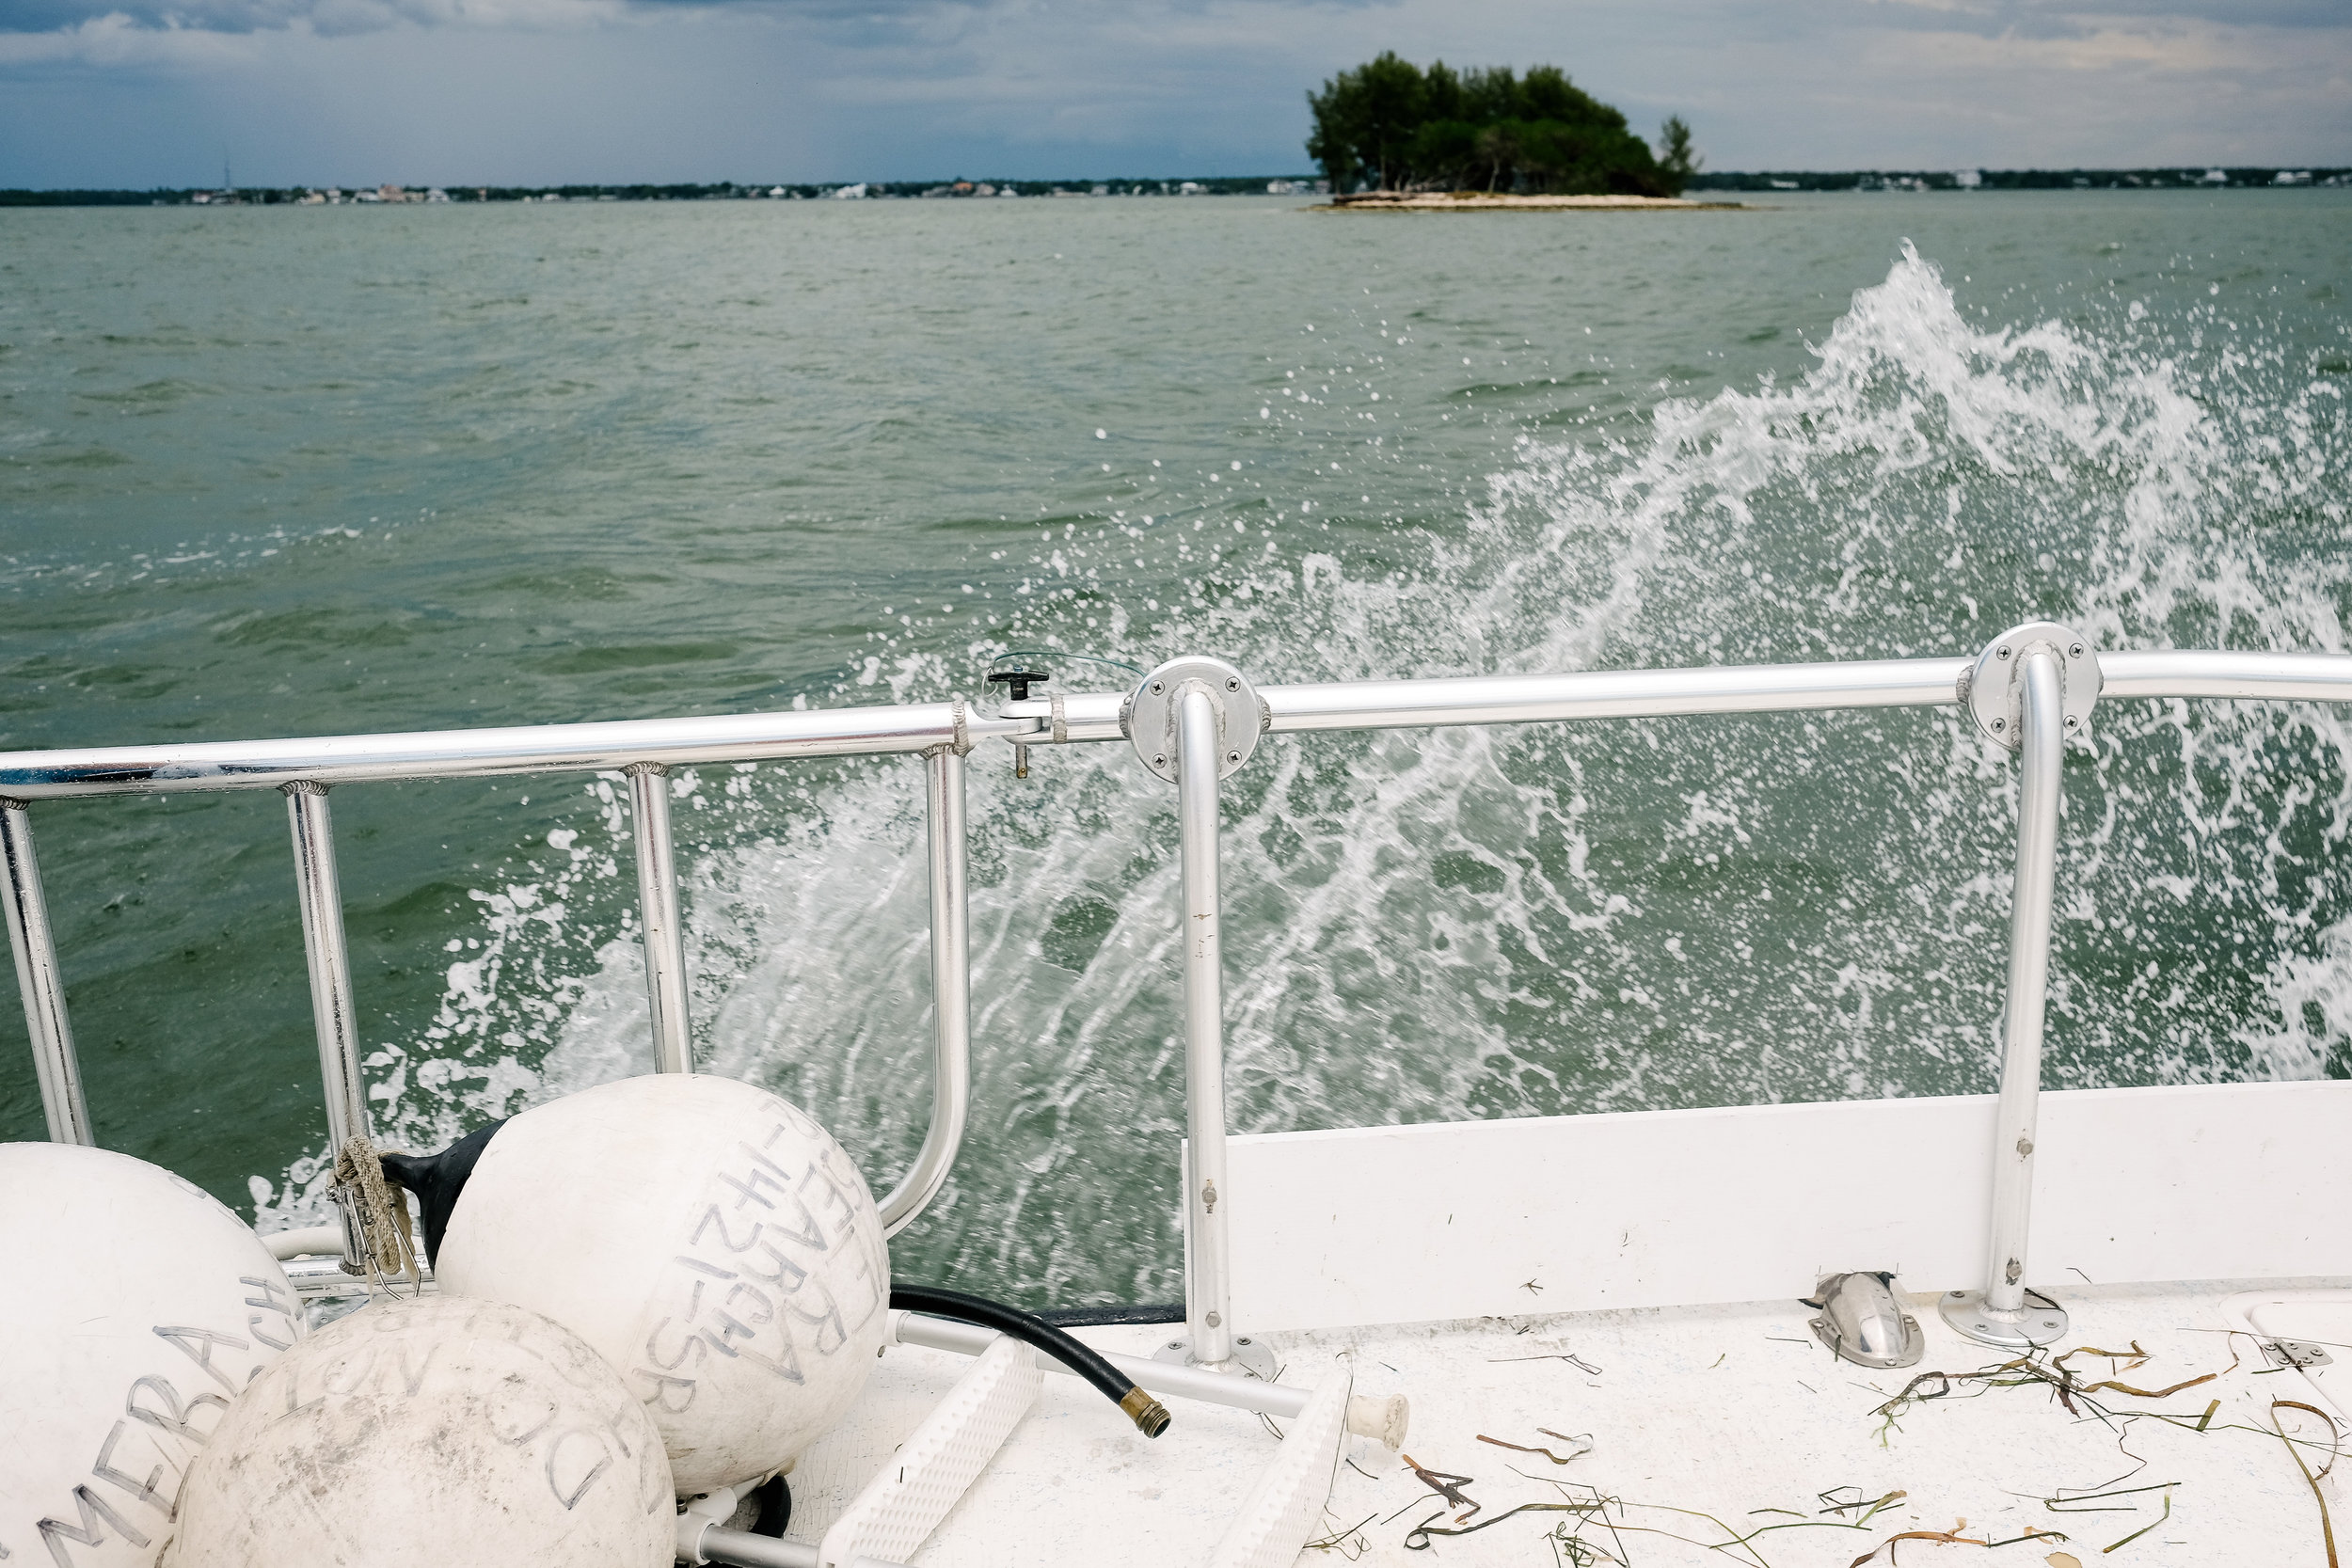 A CMERA boat heads out on a research mission near Dunedin, Florida.